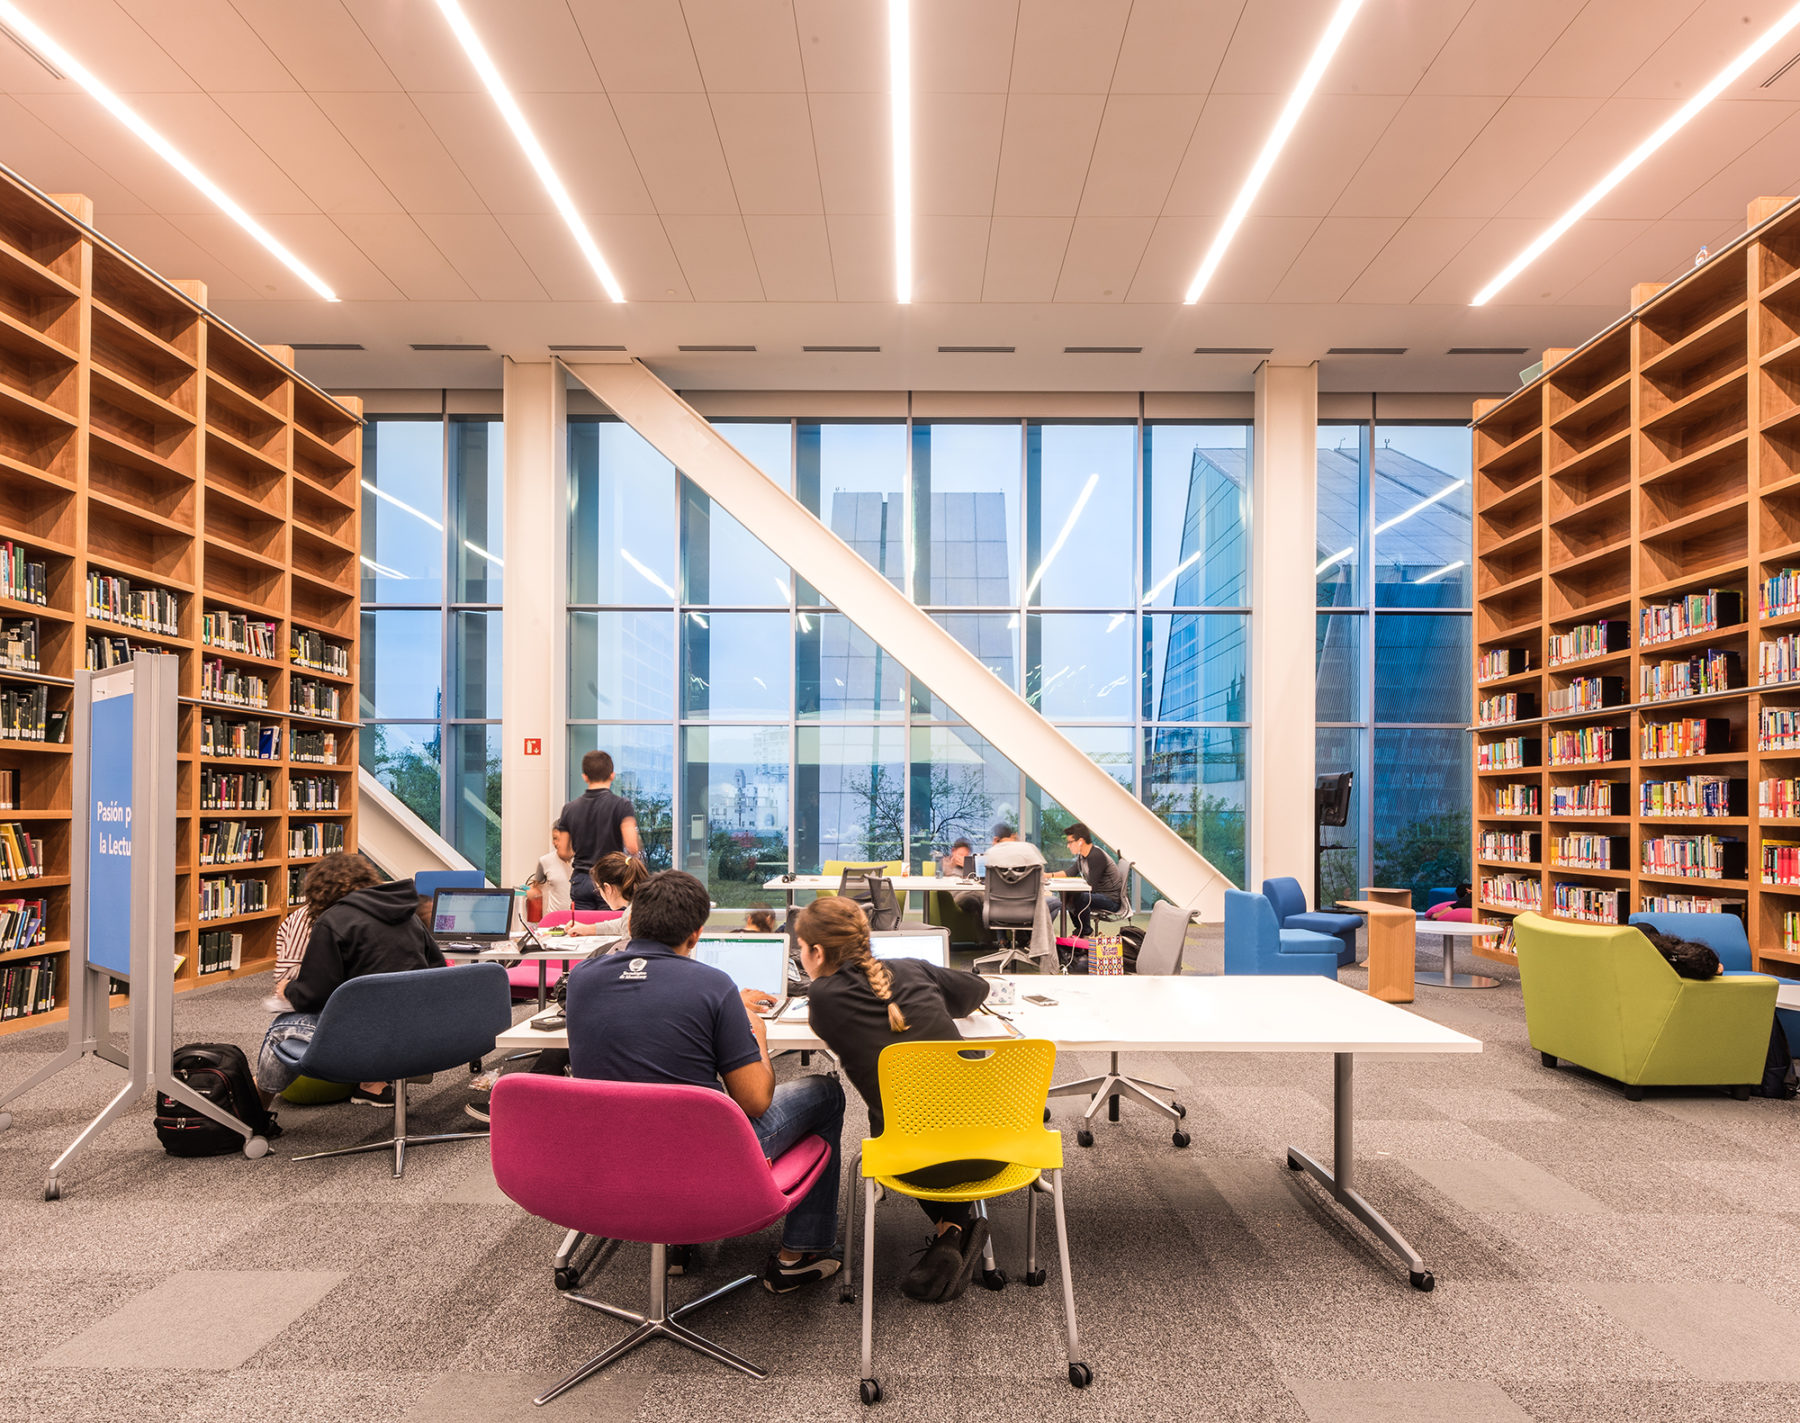 work spaces within book stacks